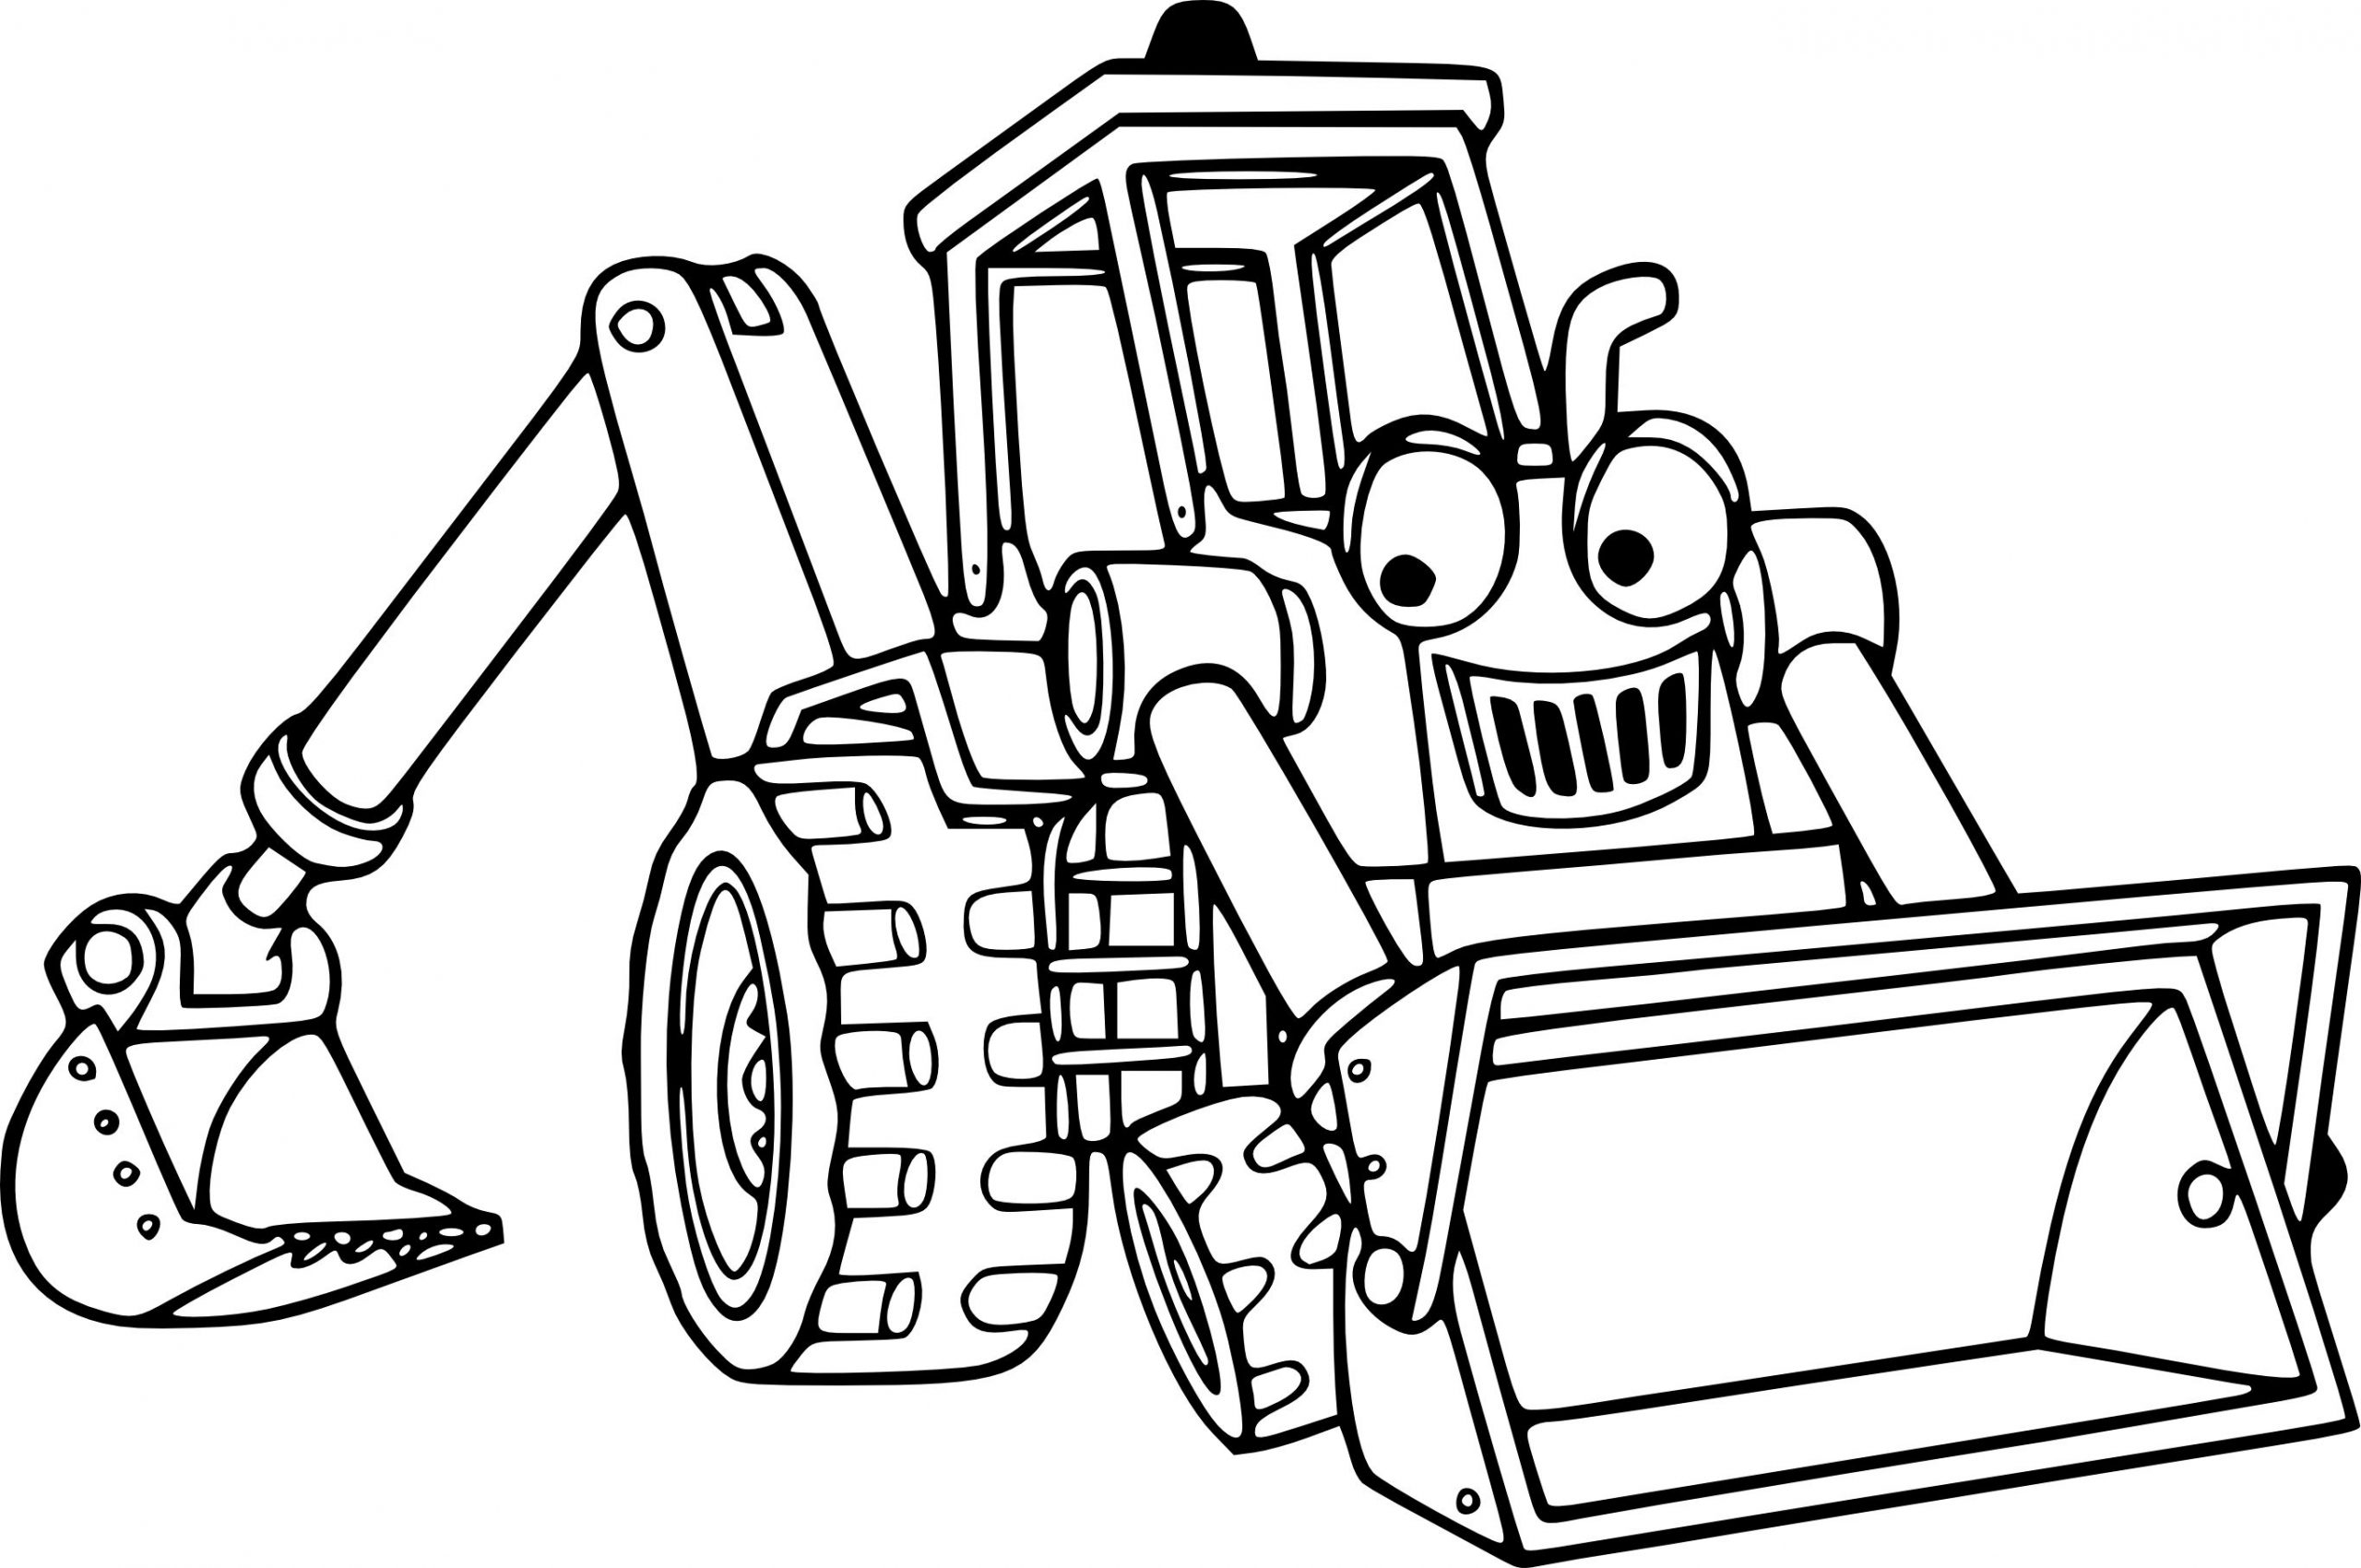 Coloriage Tractopelle Imprimer Coloriage Tracteur Pelle à Coloriage Tracteur Tom À Imprimer